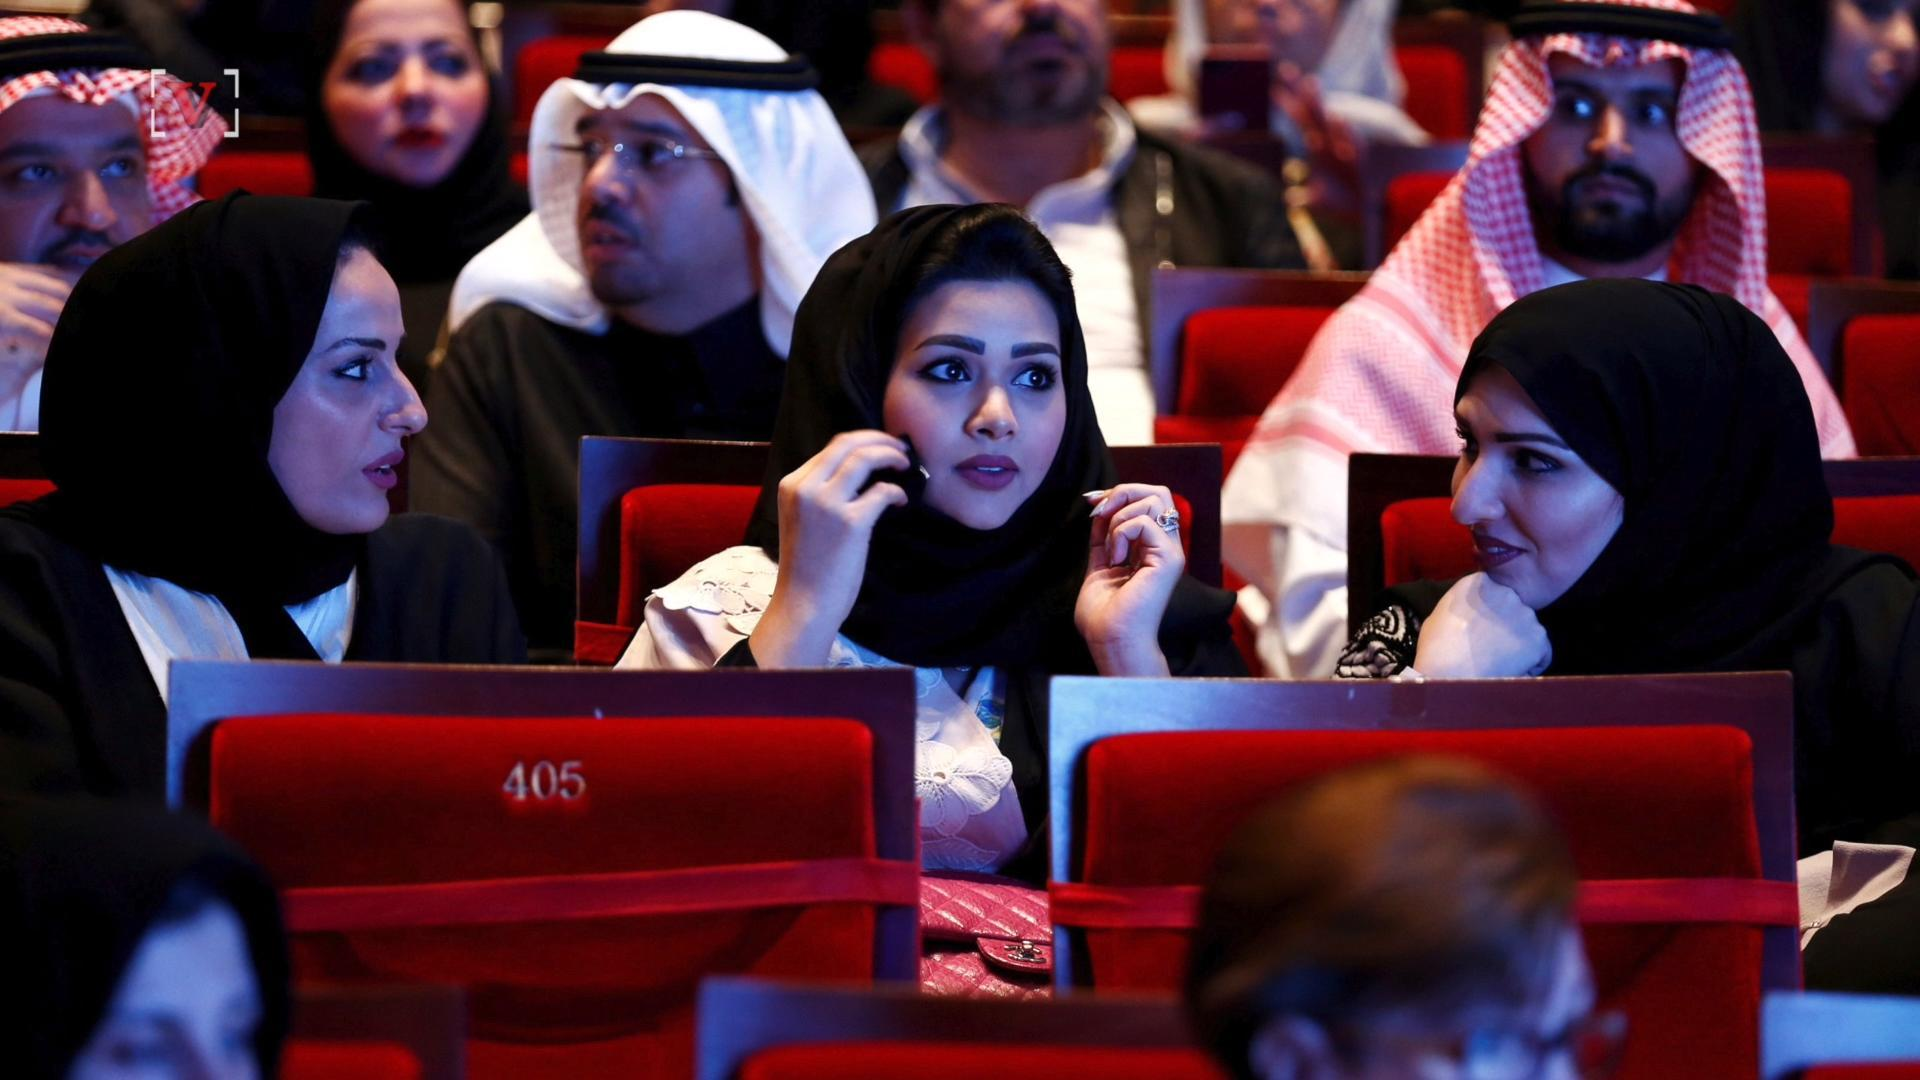 Saudi Arabia Lifts 35-Year-Long Ban on Movie Theaters